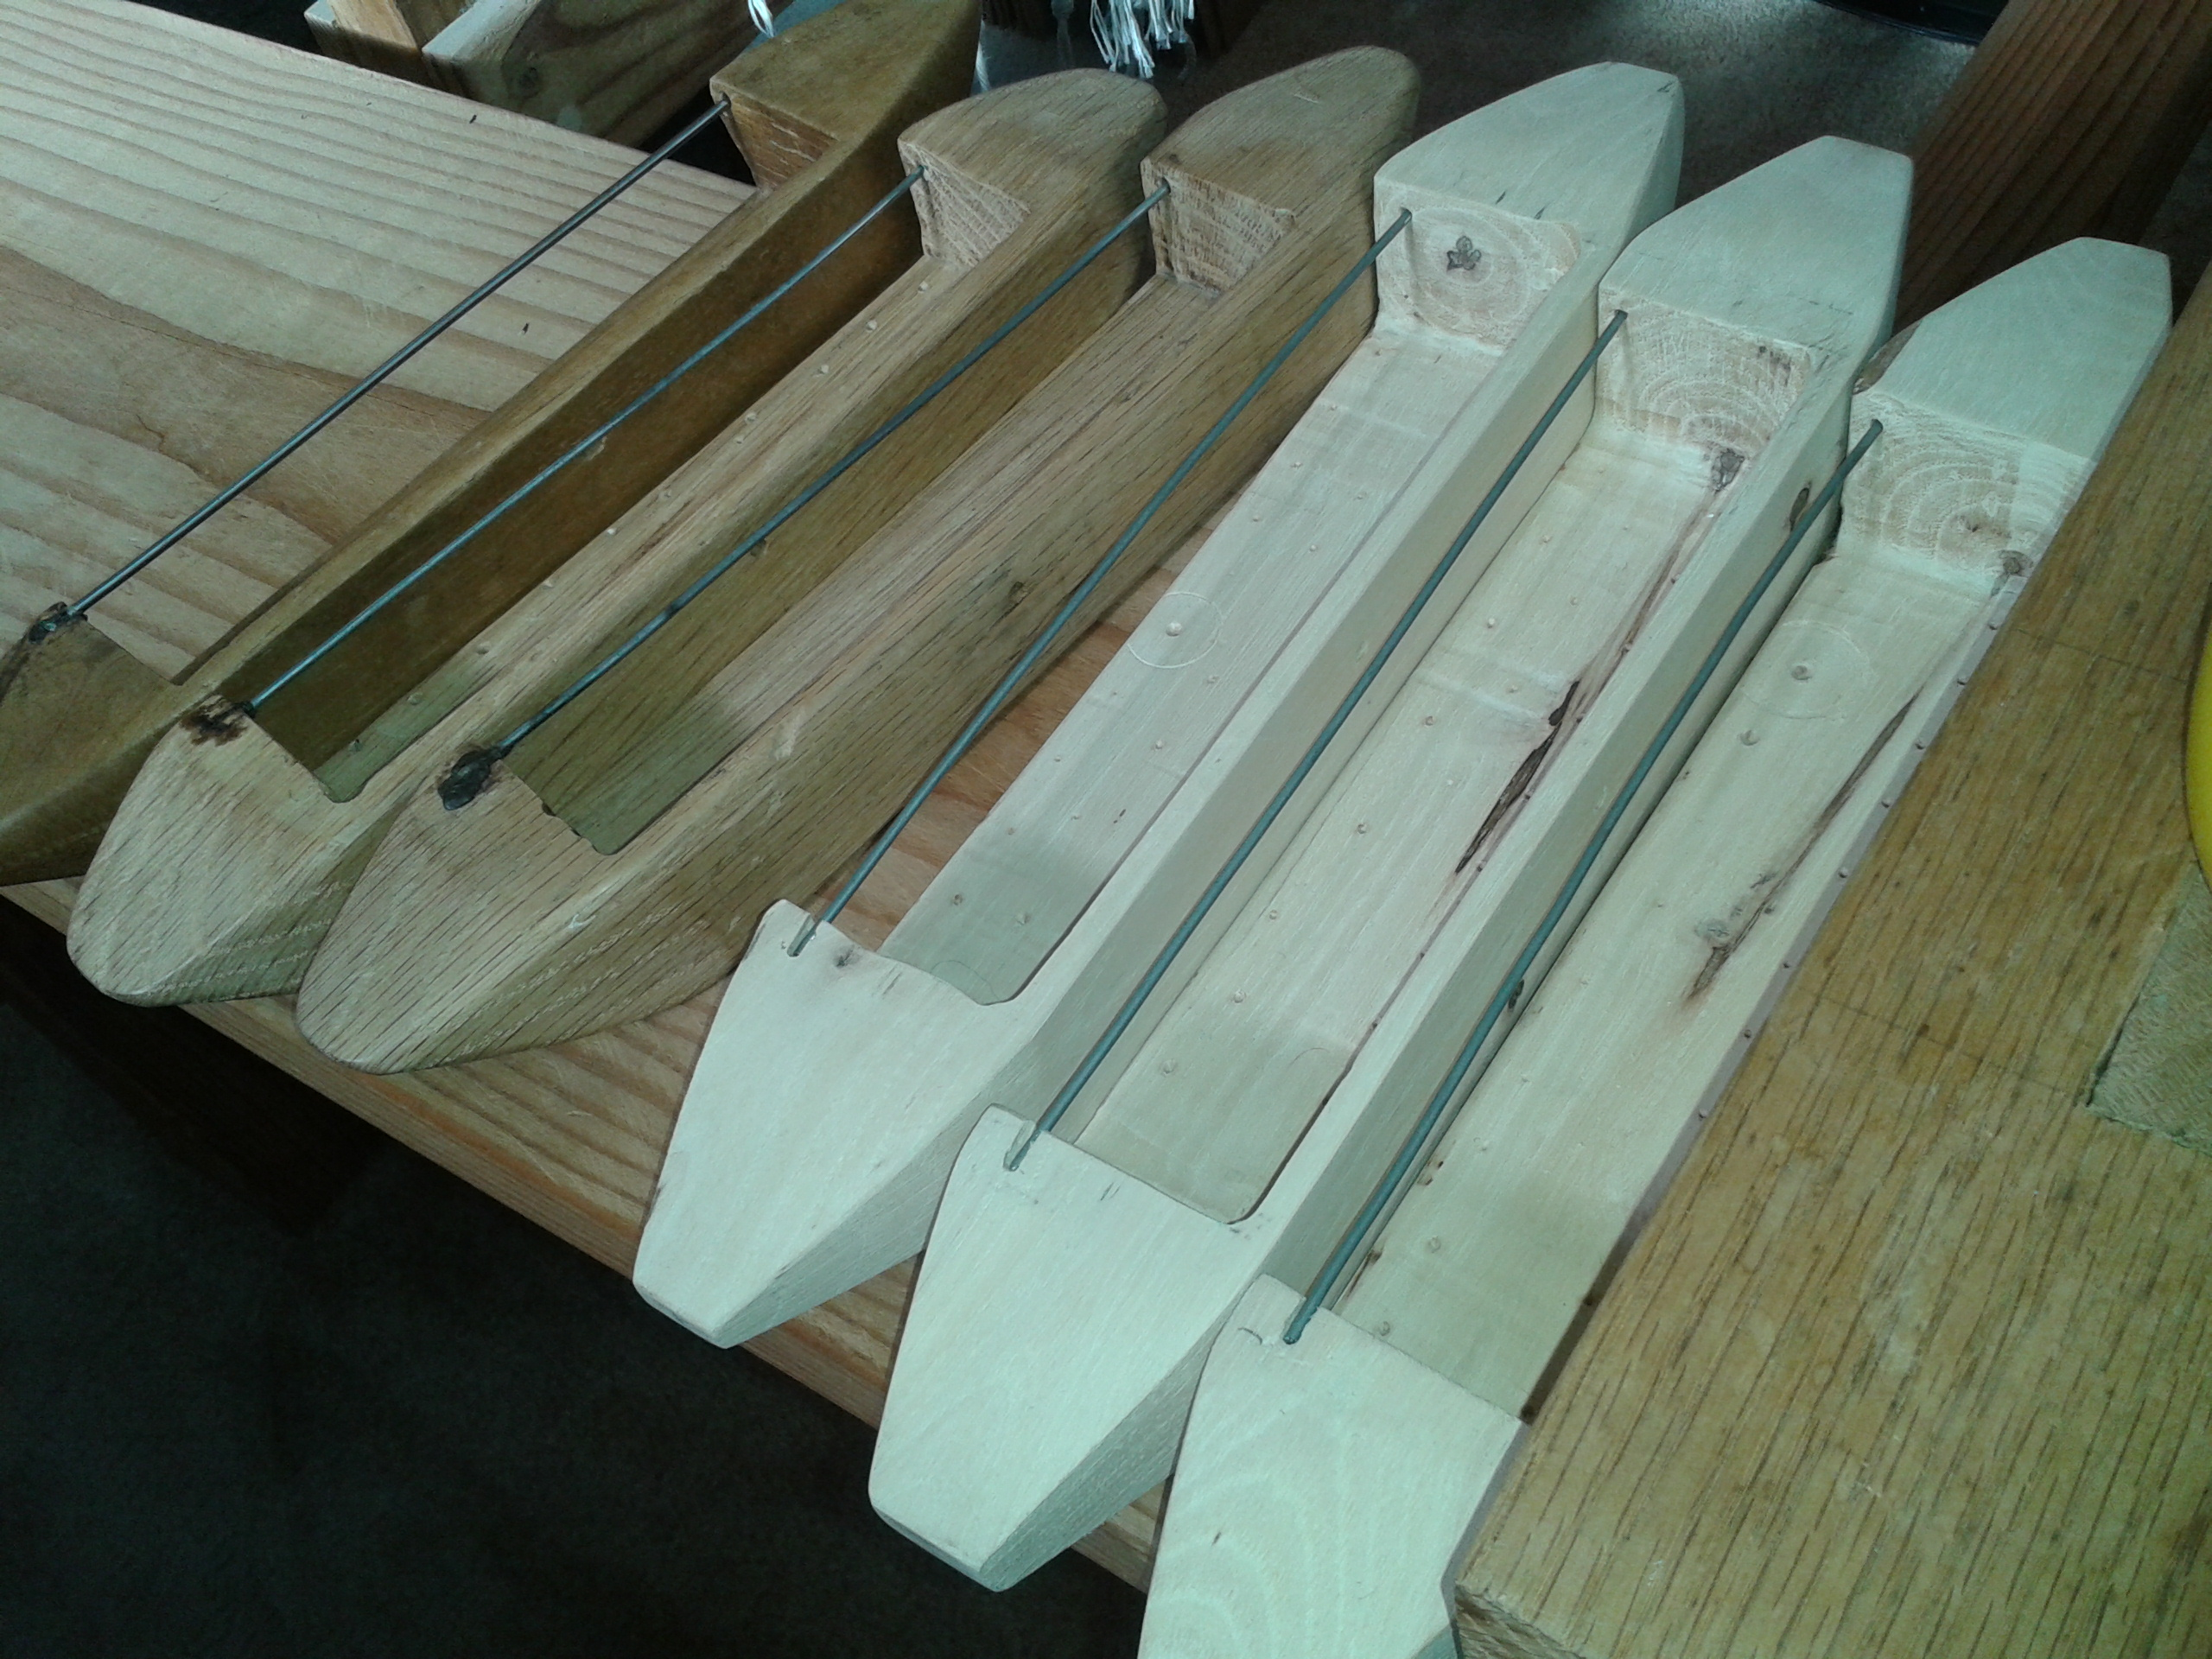 Handmade shuttles being made by Zenon Hipolito, Jaime's father